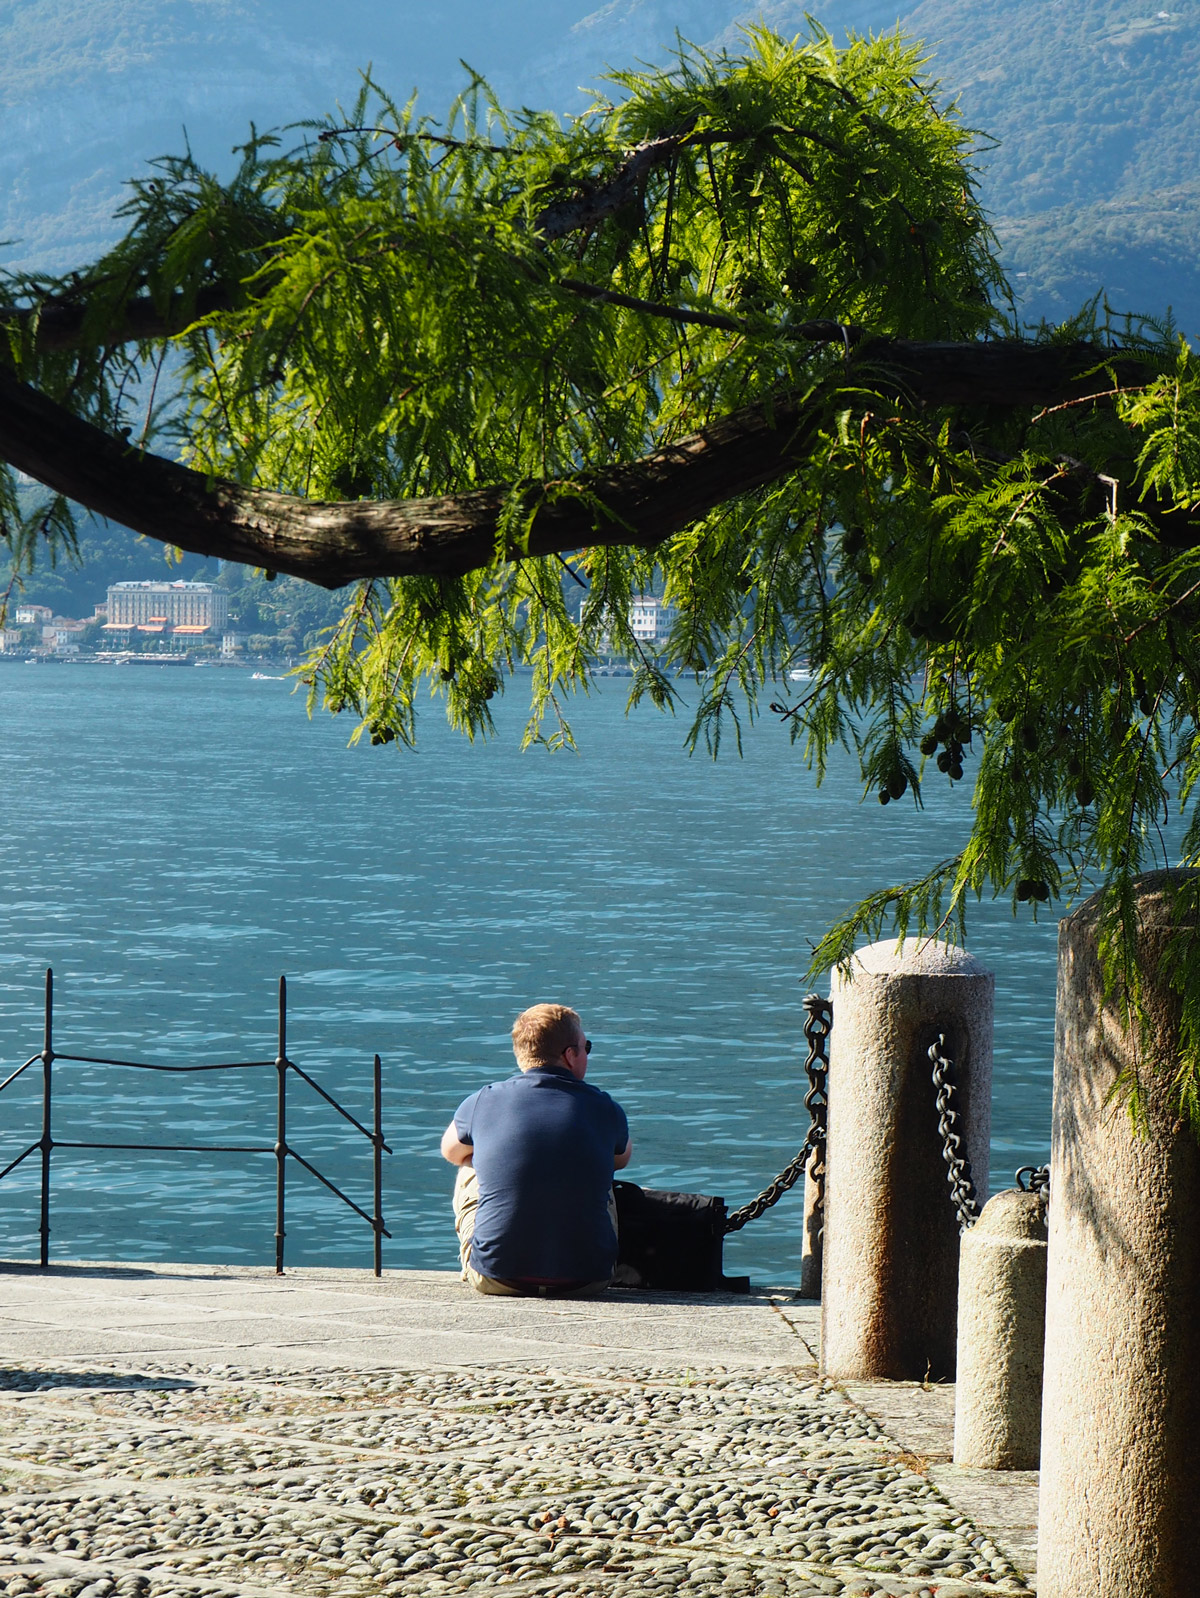 Ben being pensive over Lake Como